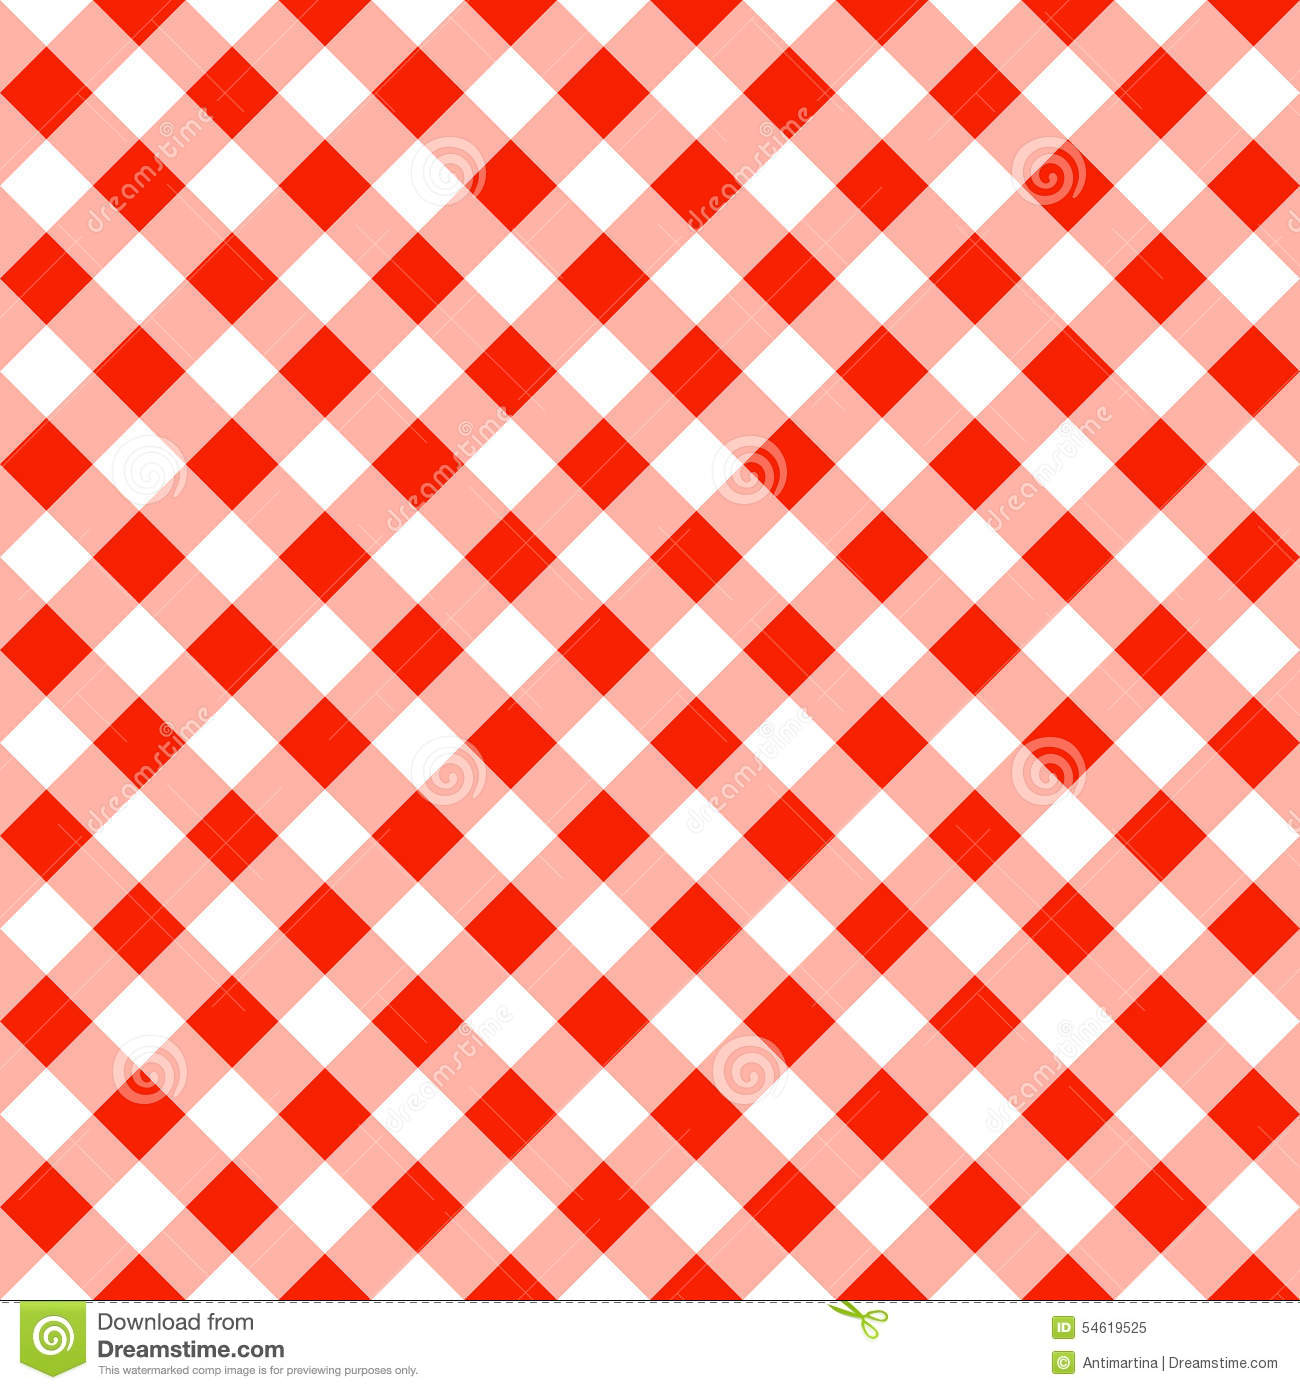 Checkered tablecloth background clipart.